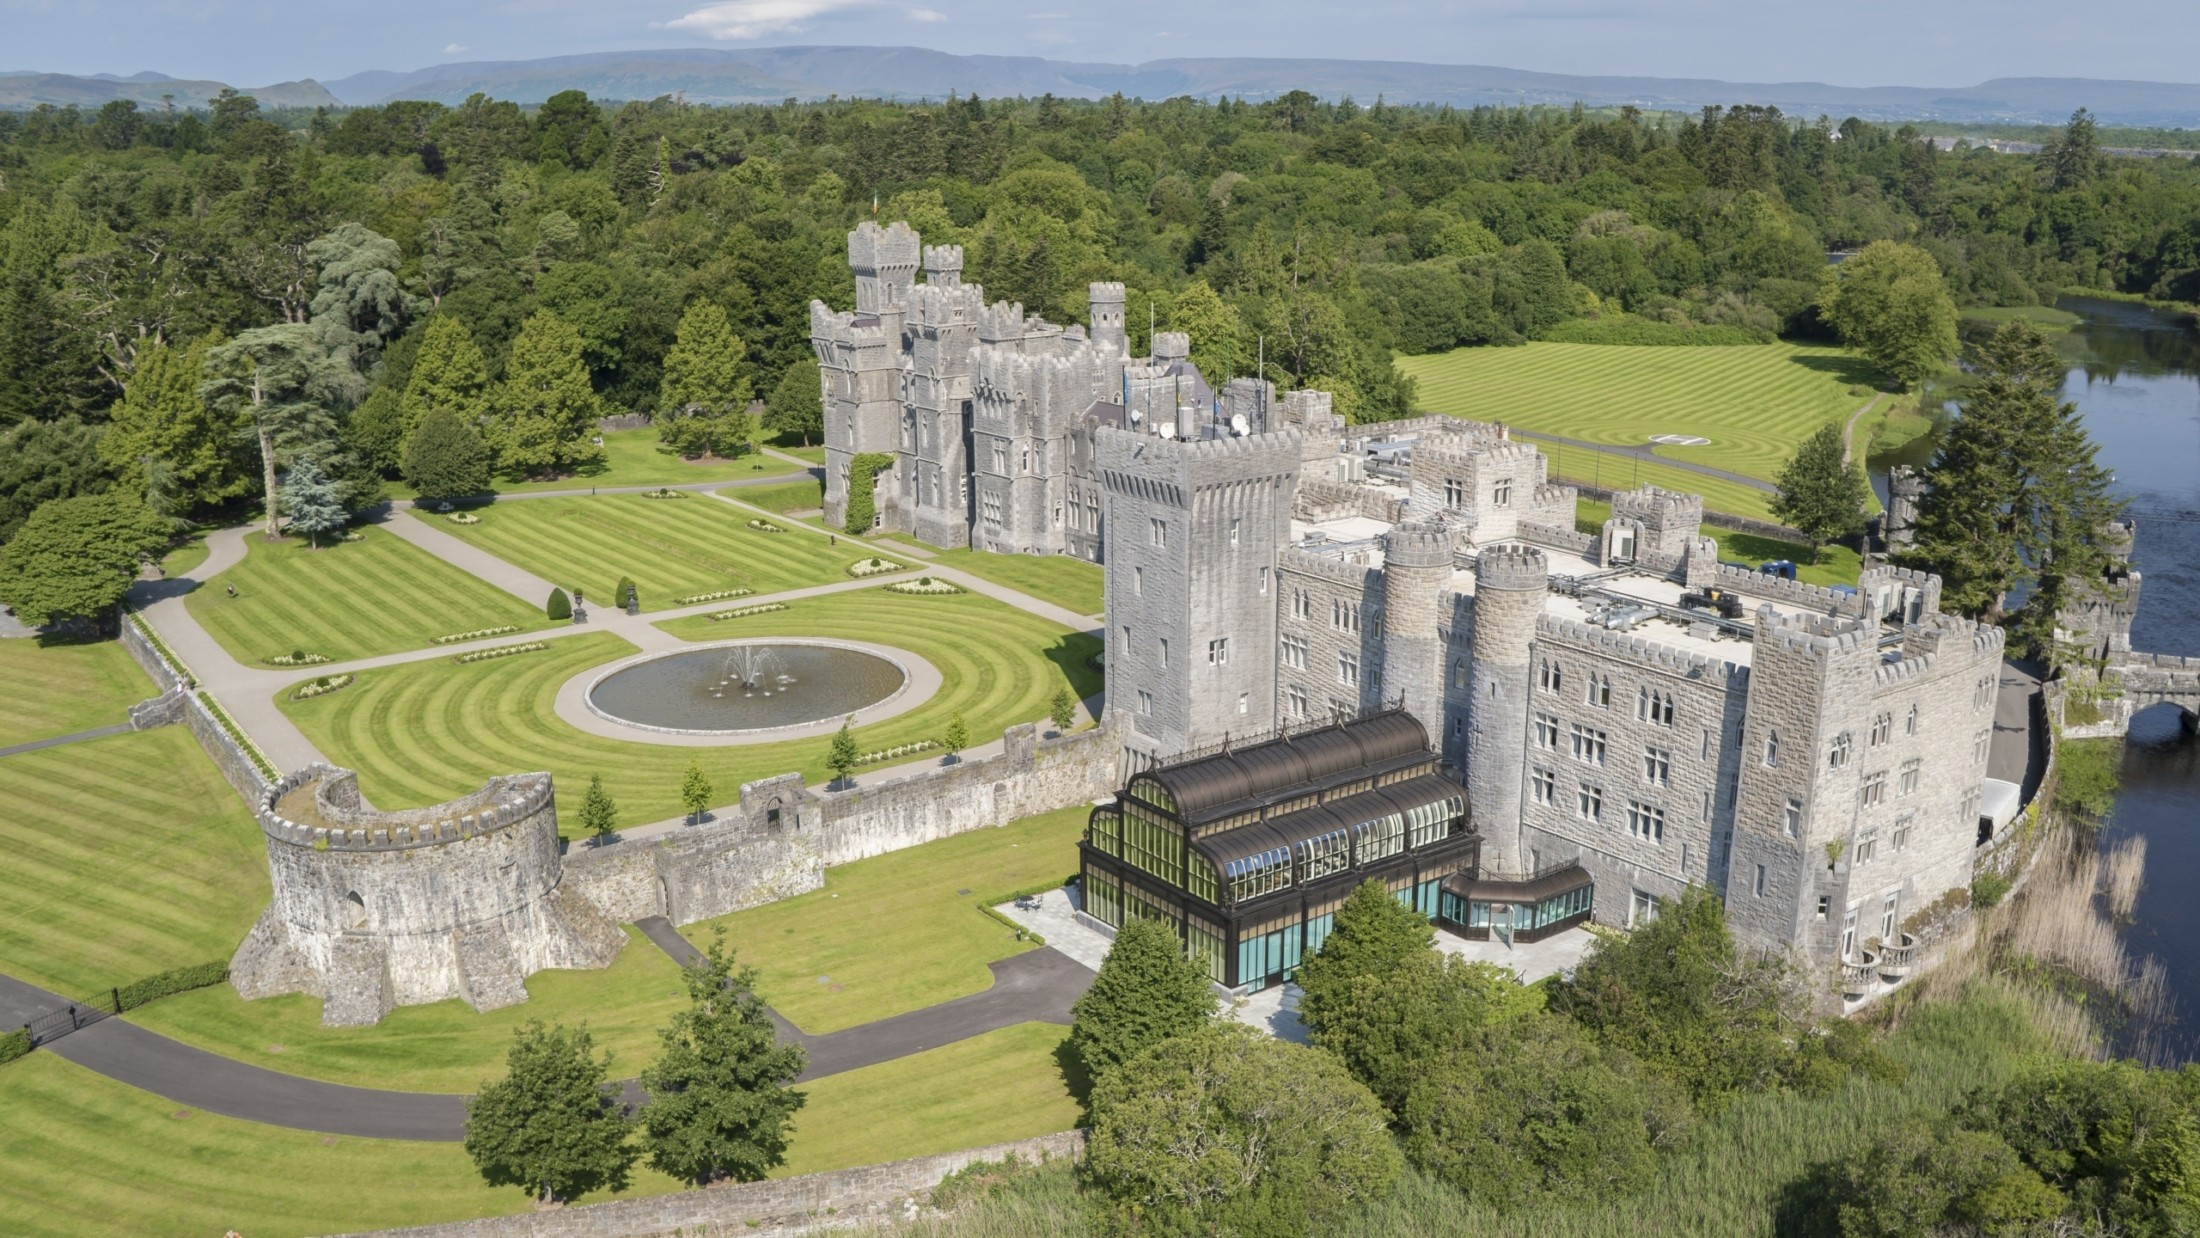 THE CHRISTMAS GIFT OF DREAMS: ASHFORD CASTLE LAUNCHES GIFT VOUCHERS WITH VALUE ADDED